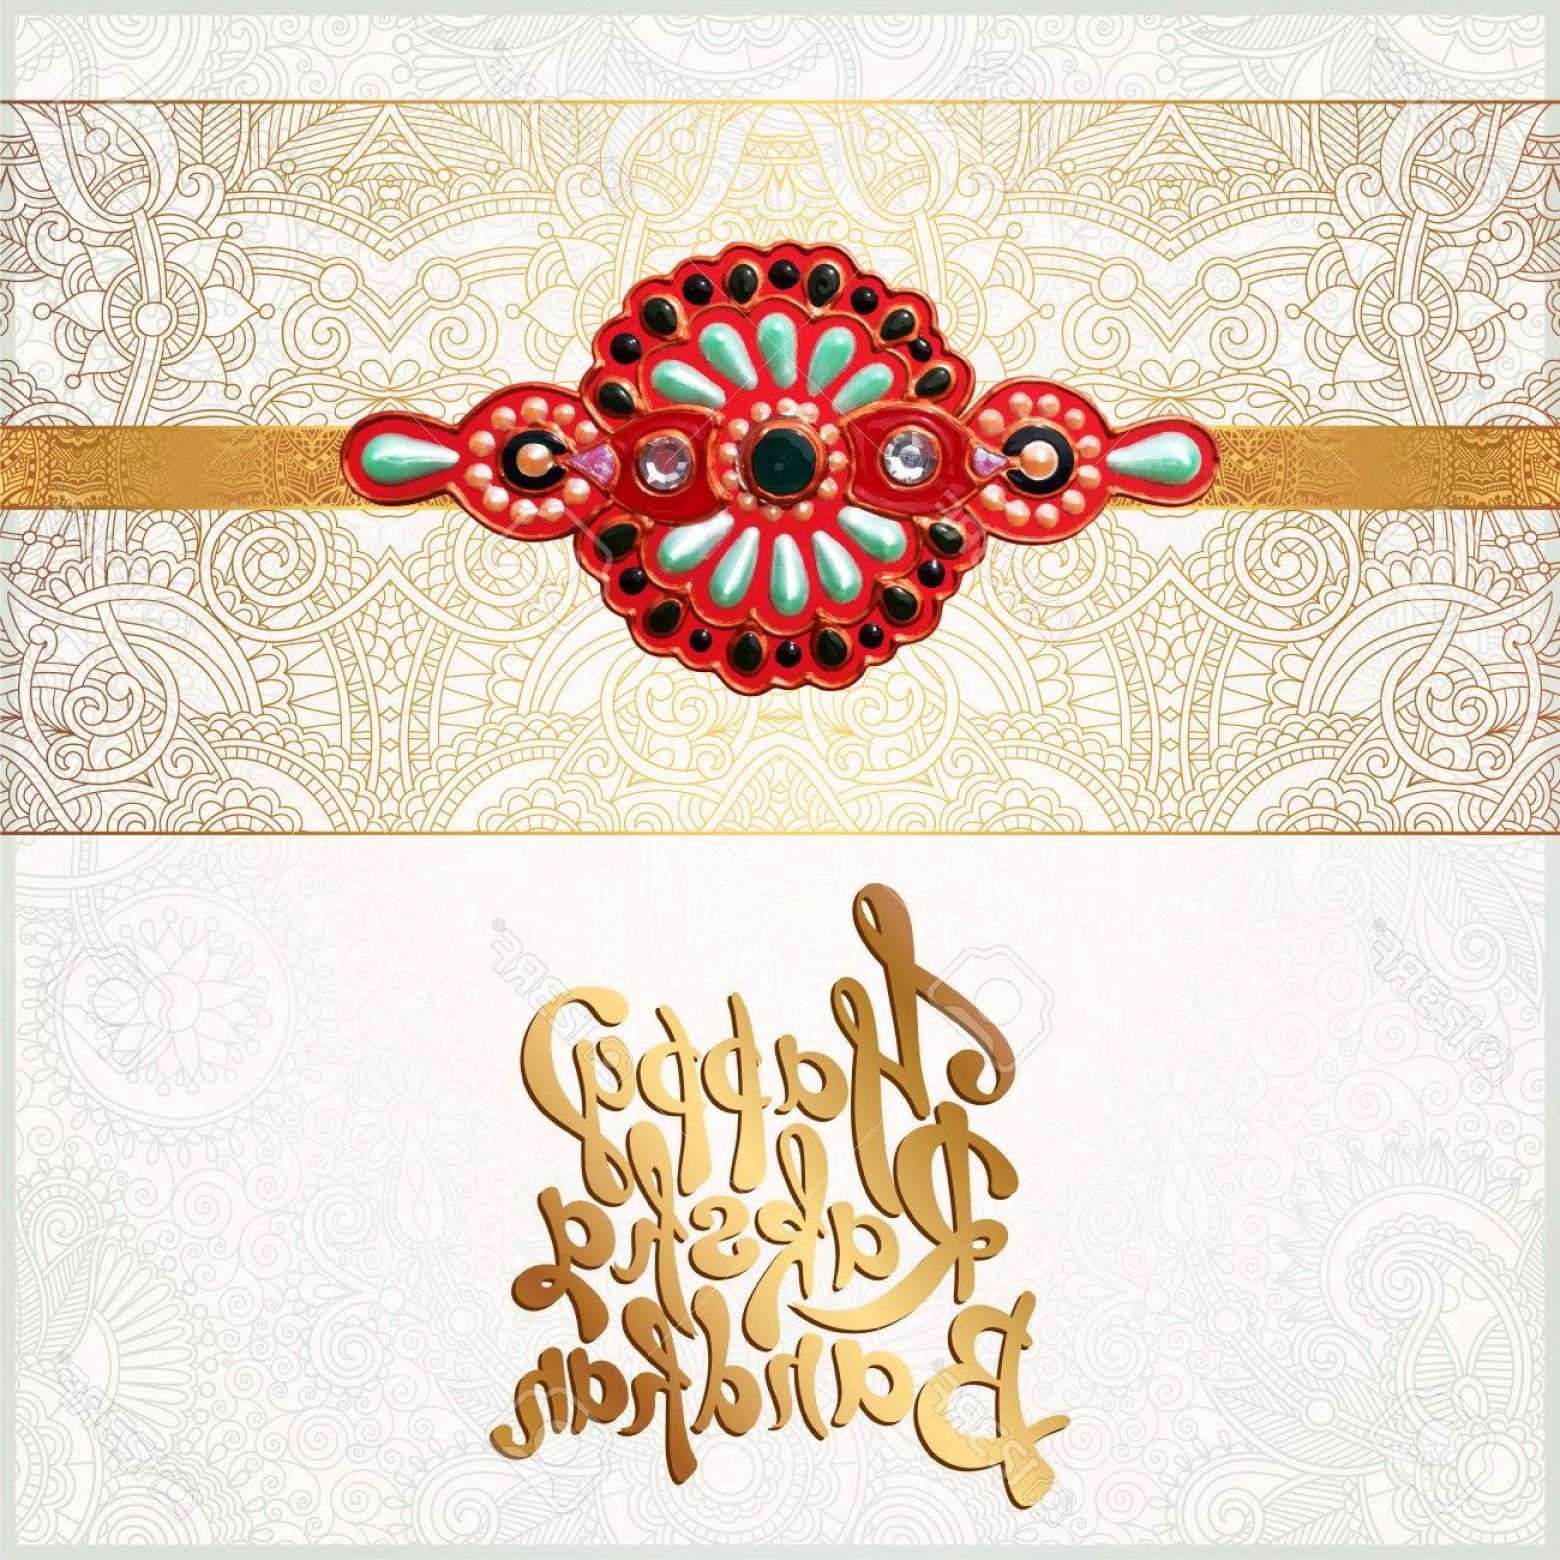 Sisters Lettering Vector: Photostock Vector Original Handmade Rakhi On Floral Background With Lettering Happy Raksha Bandhan For Indian Festival